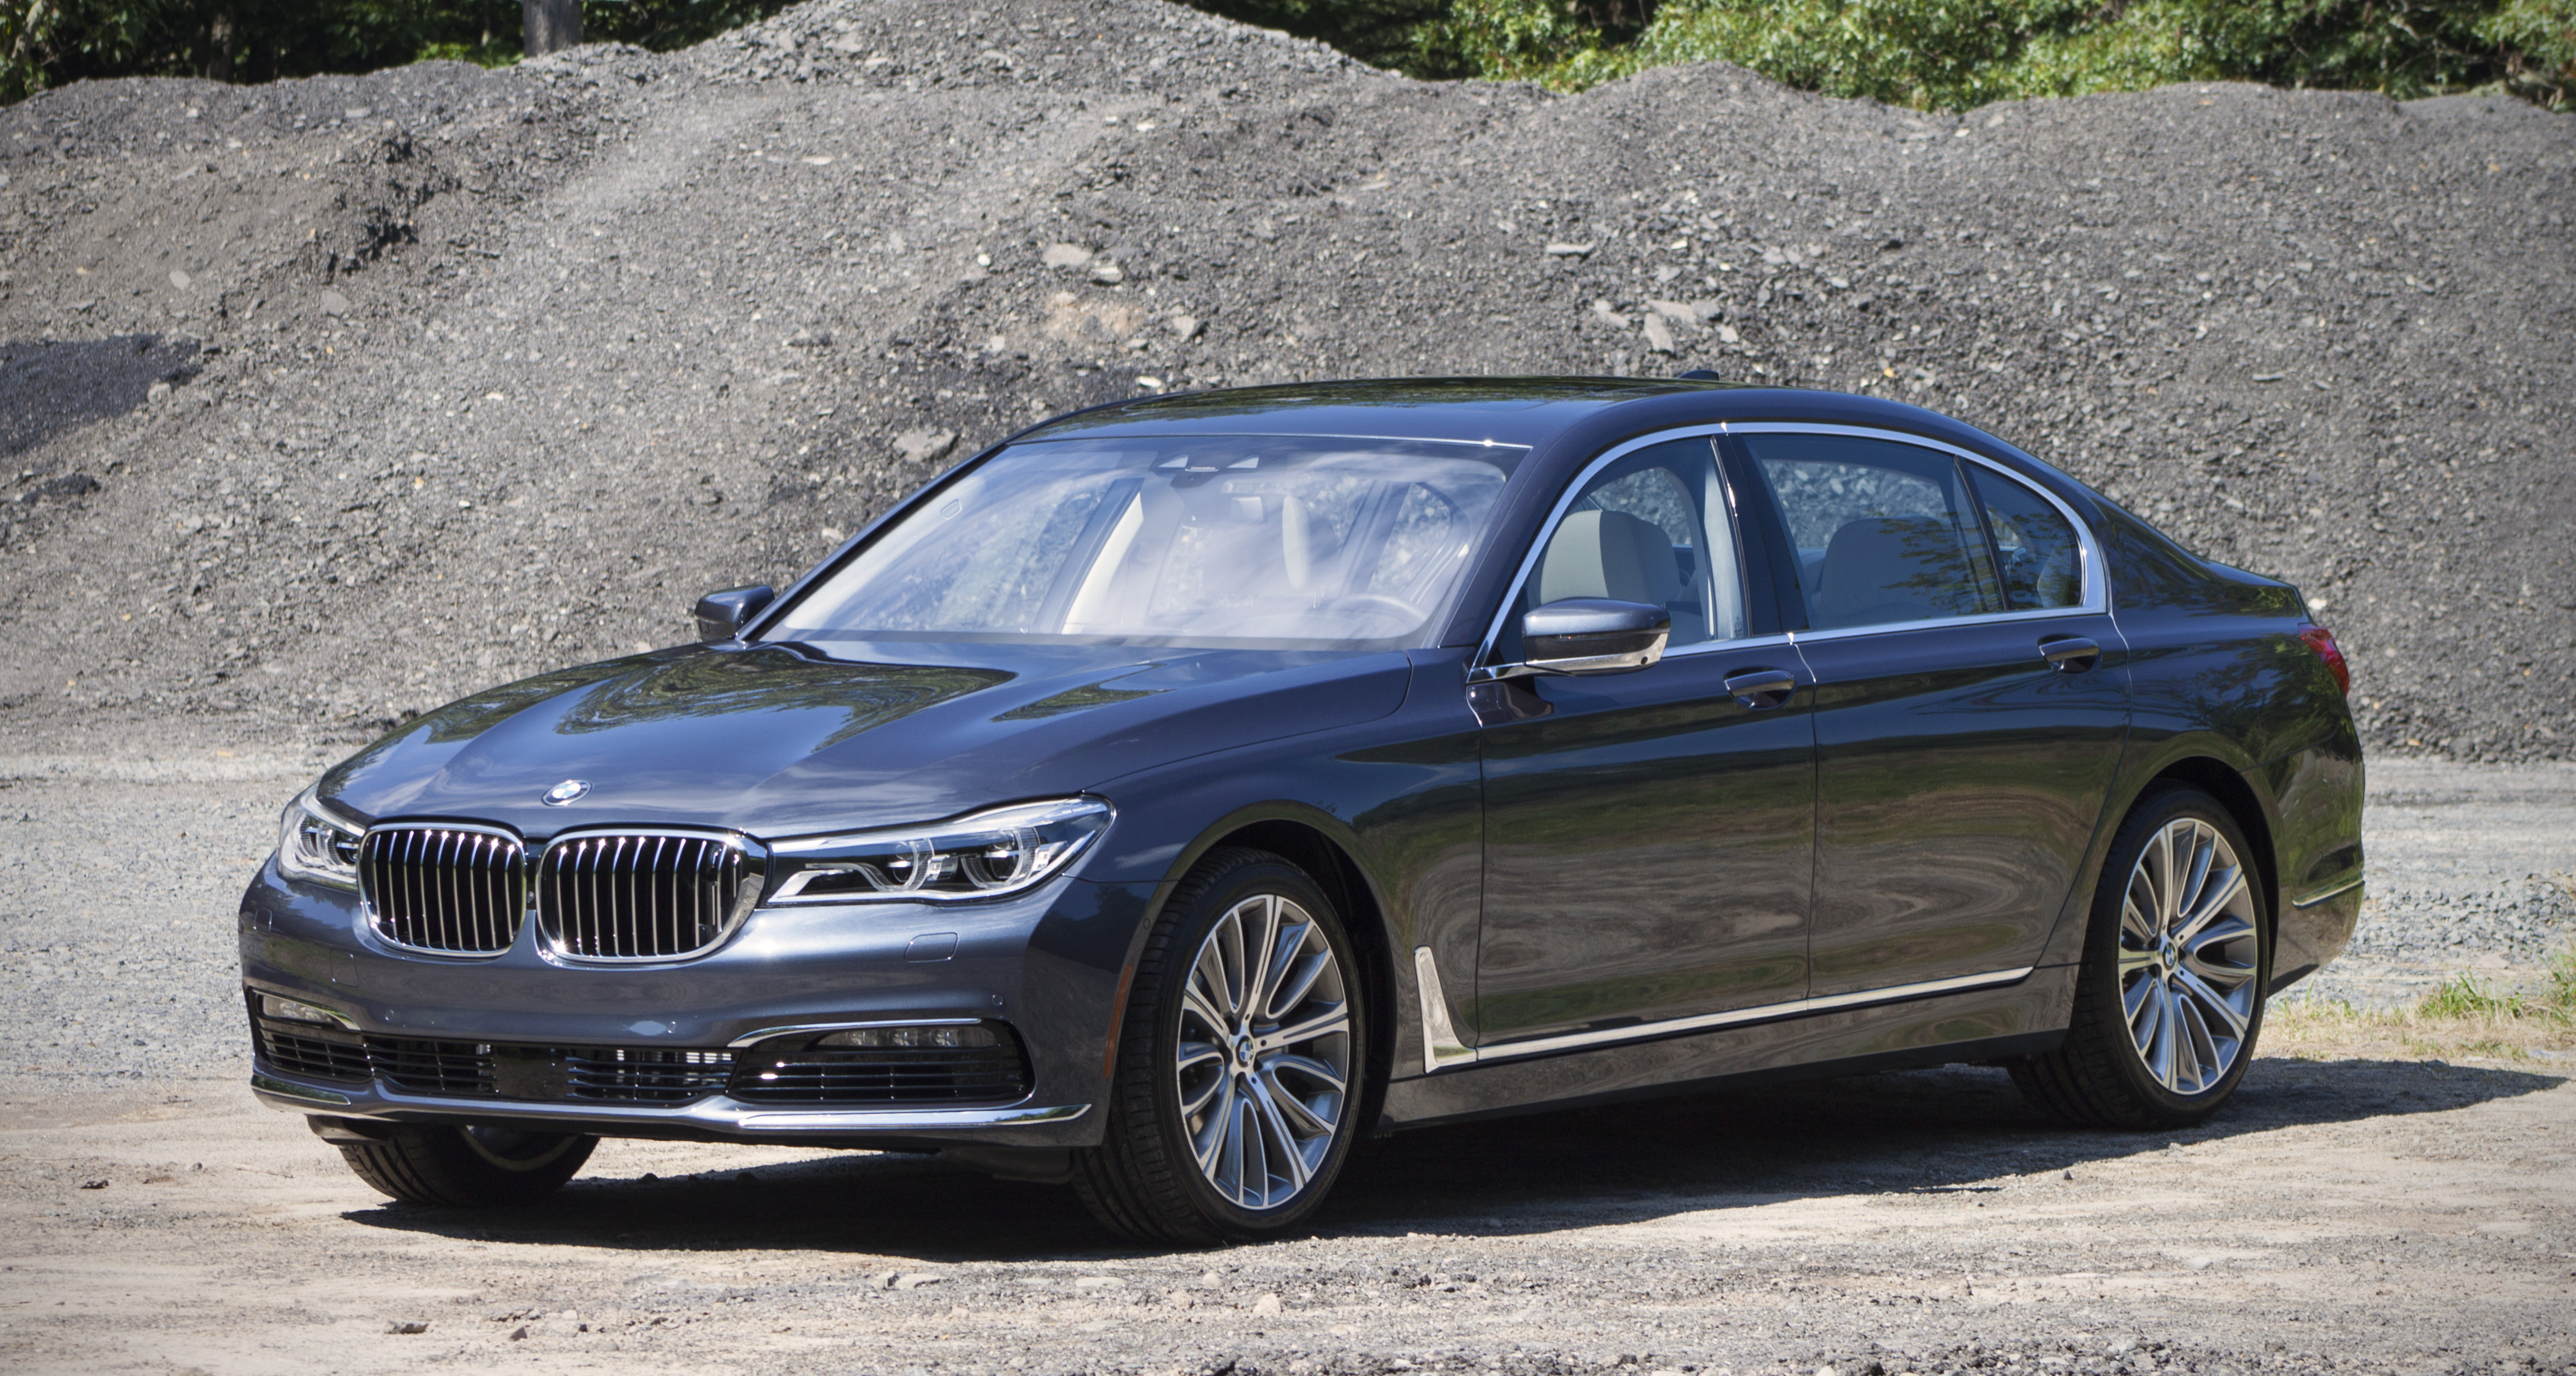 Monticello Motor Club >> Driven: 2016 BMW 750i xDrive, Technology Meets Luxury ...